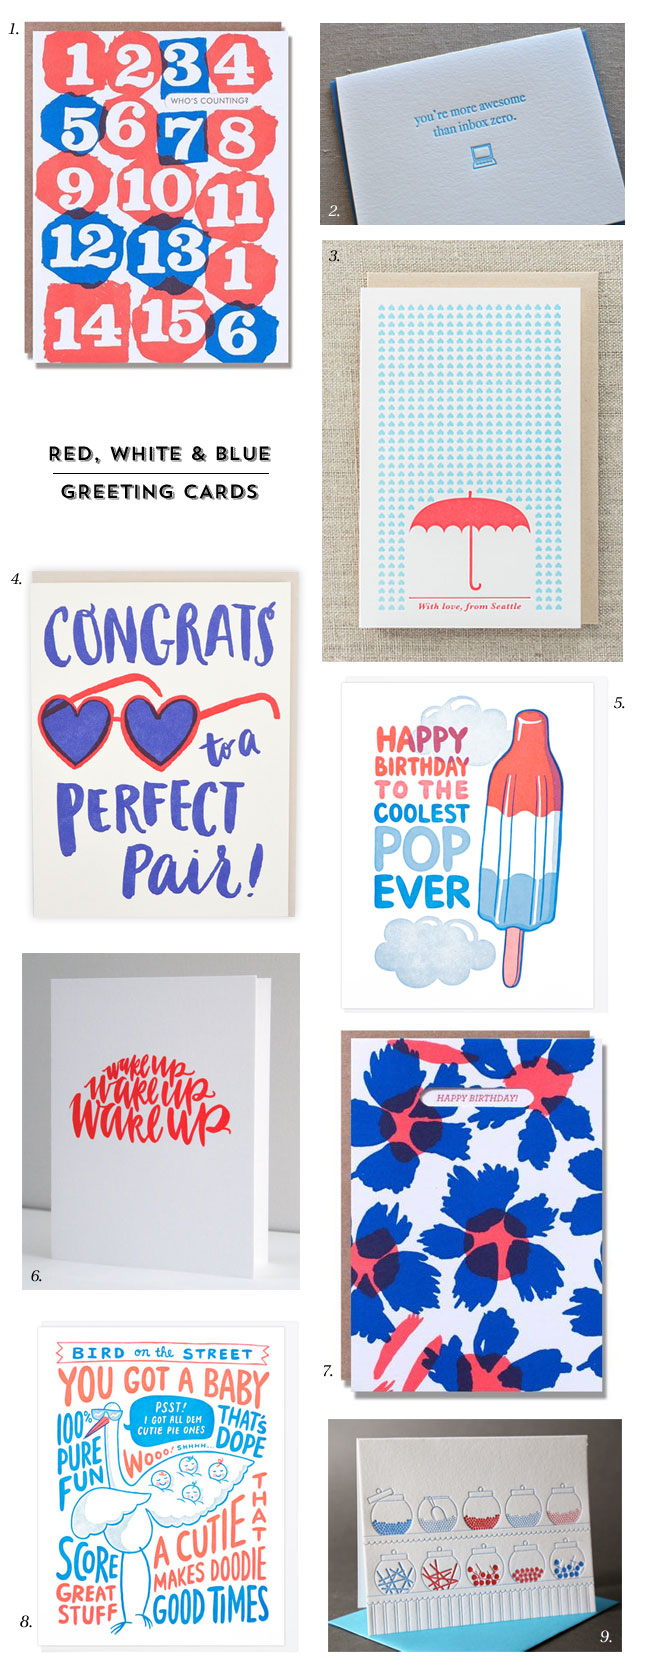 http://i2.wp.com/papercrave.com/wp-content/uploads/2016/07/red-white-blue-greeting-cards.jpg?resize=650%2C1675